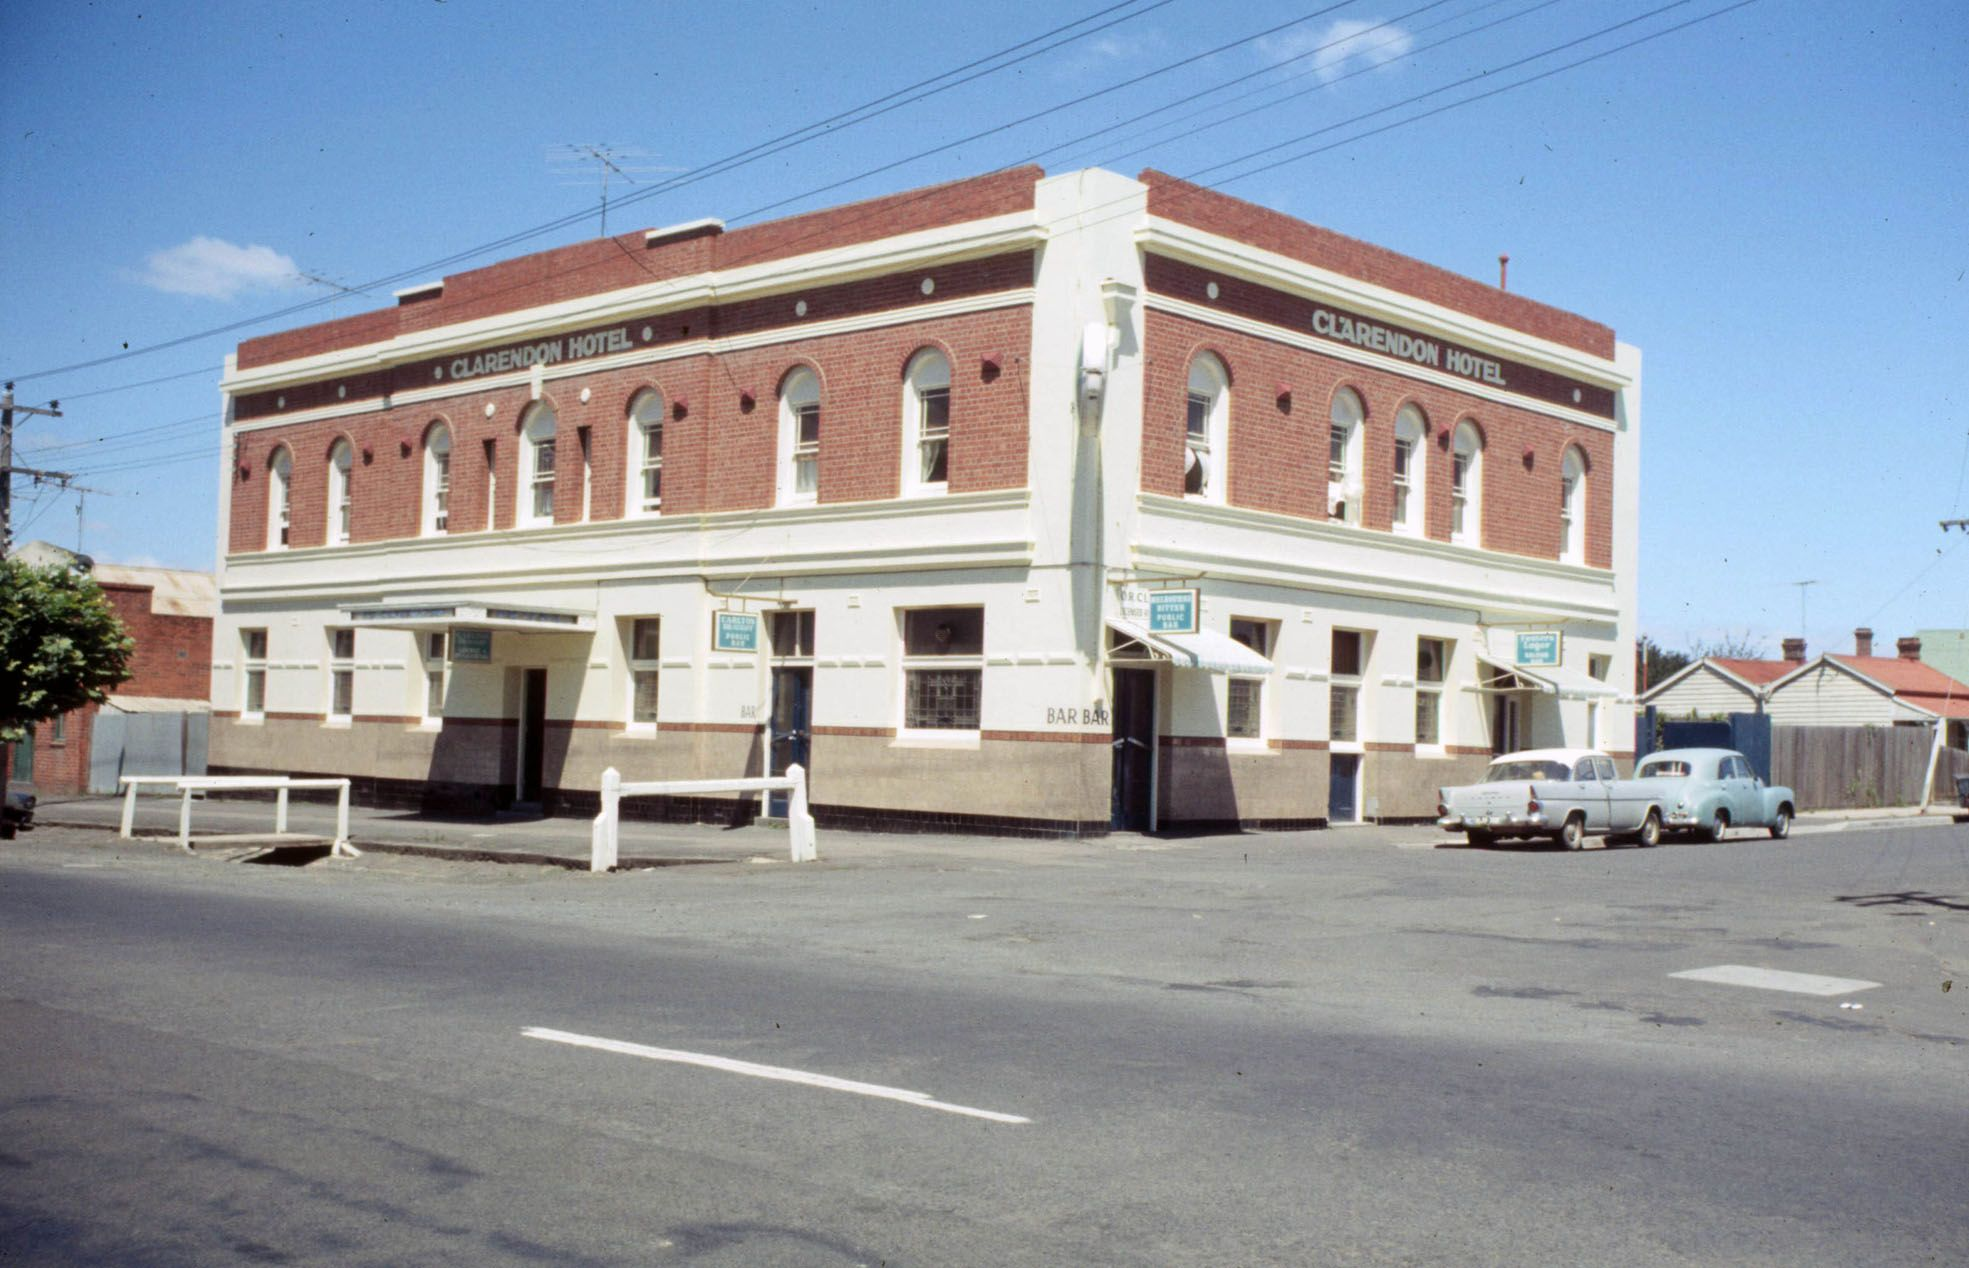 Cricket Club Aka Clarendon Hotel Cnr Clarendon Street And La Trobe Terrace Chilwell Historic Hotels Hotel Geelong